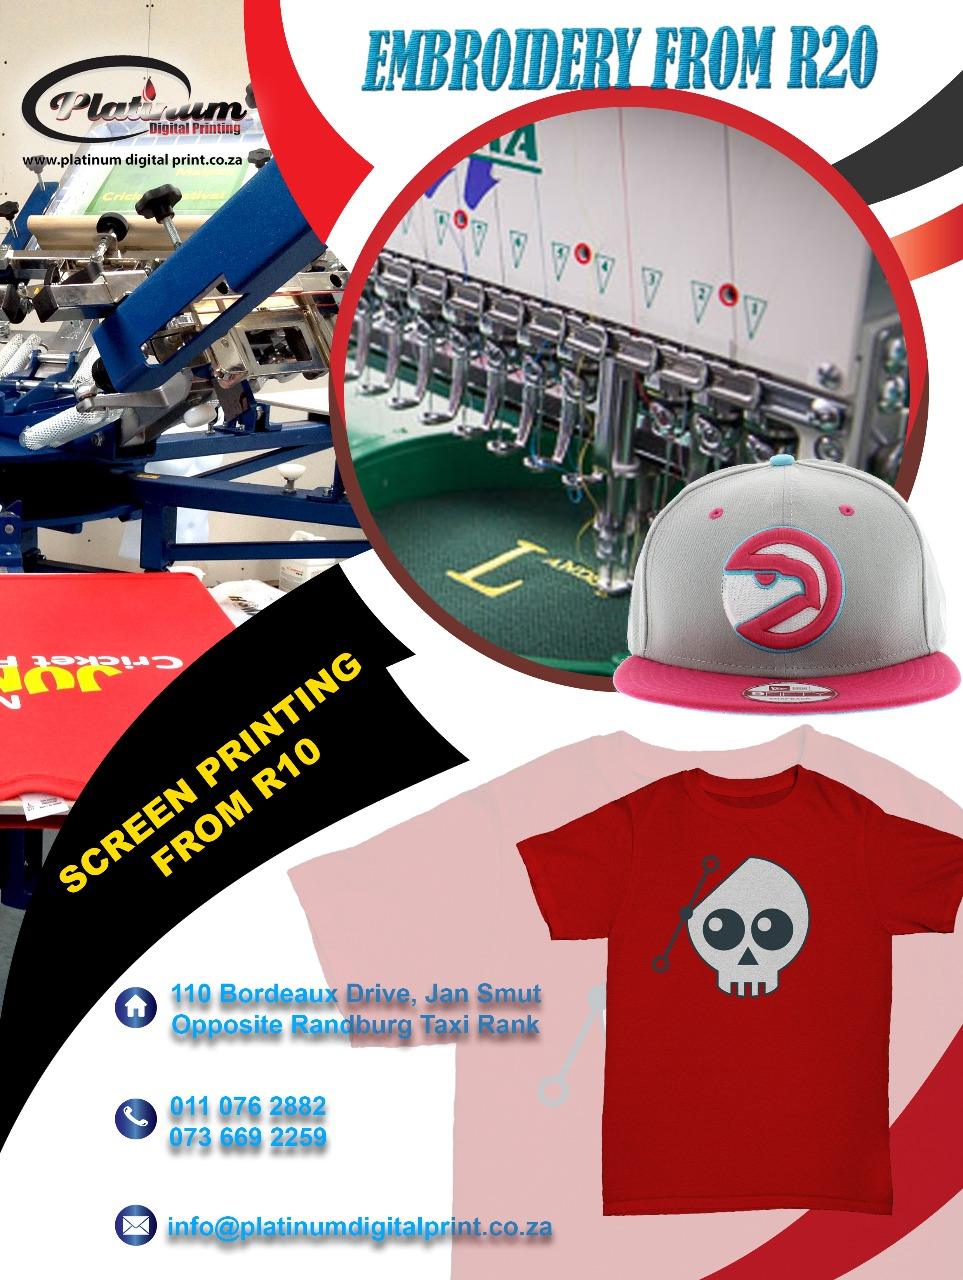 T Shirts Printing Machine For Sale In South Africa | Lixnet AG